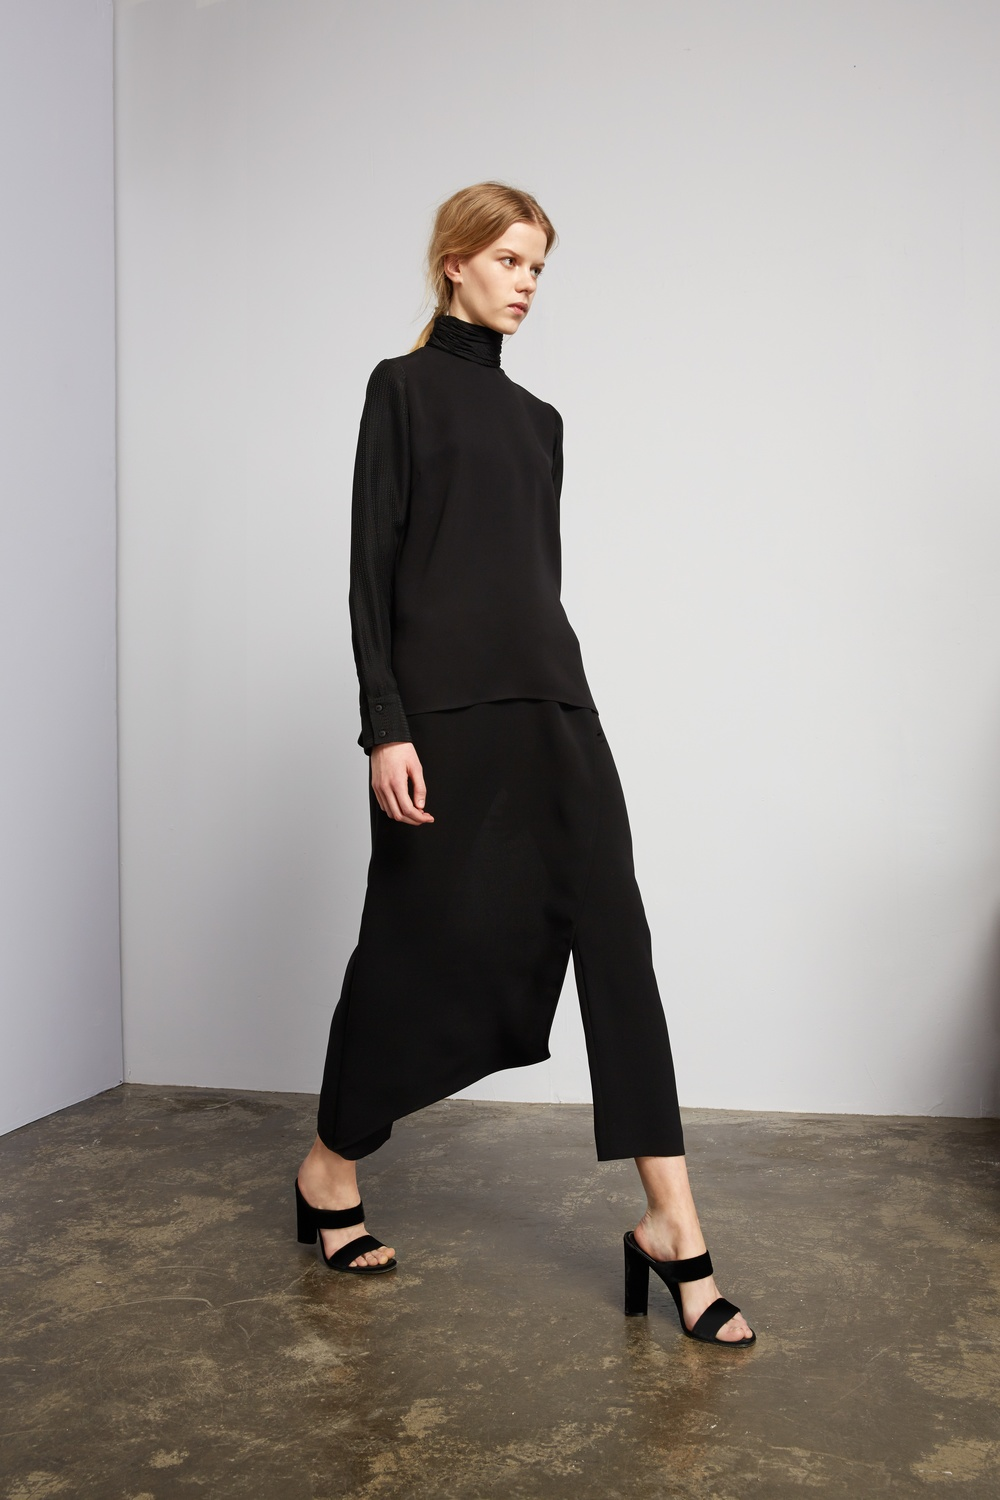 Stahl polo neck top, Gehry pants